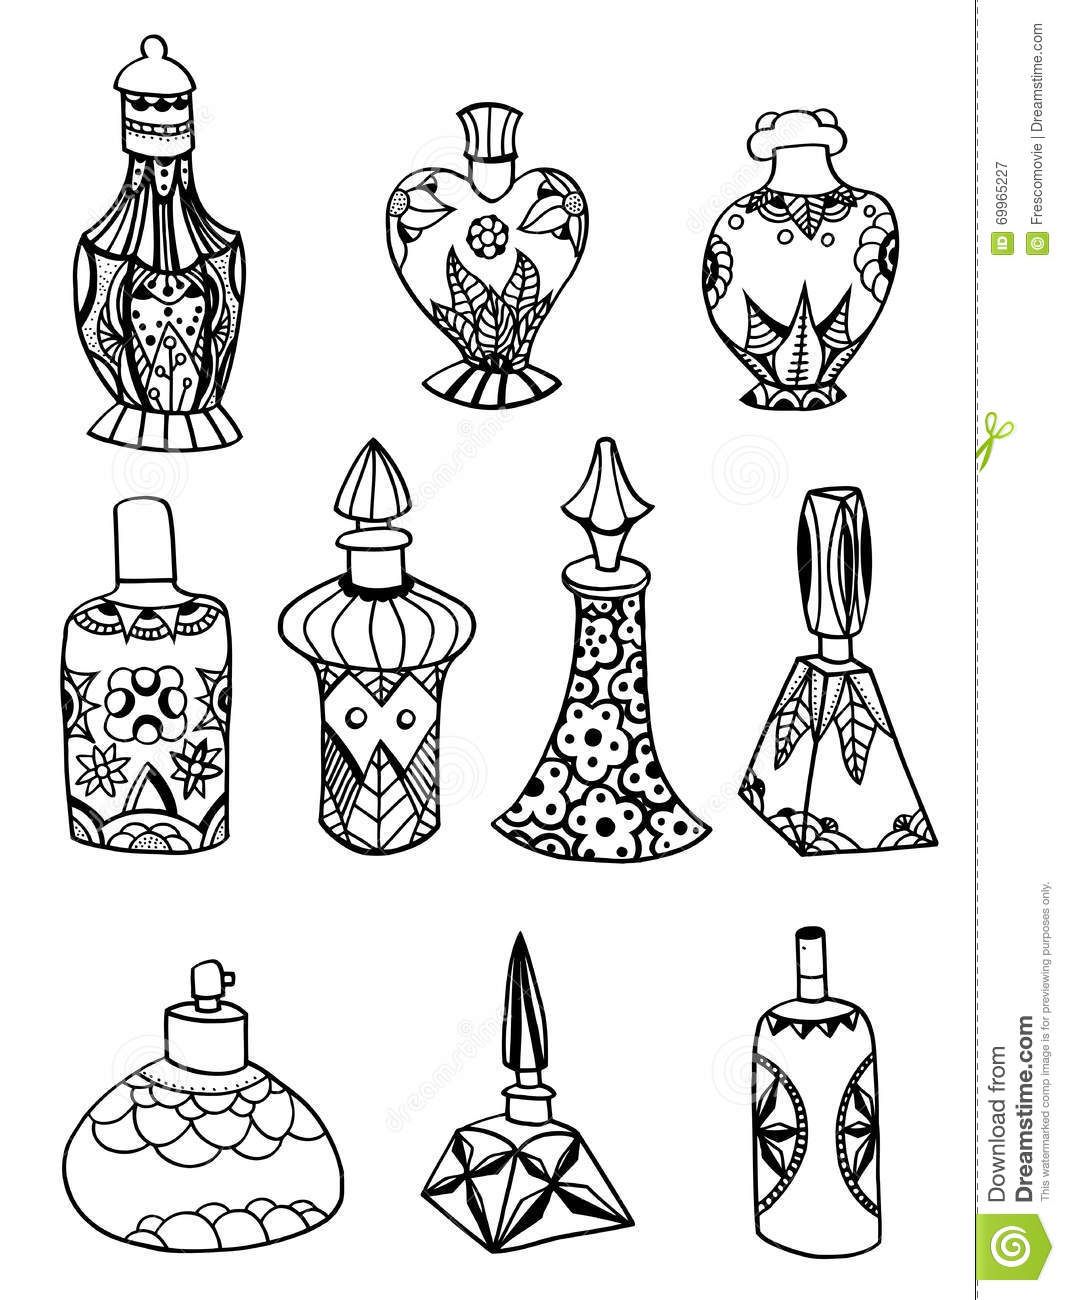 Isolated perfume bottles stock vector  Illustration of design - 69965227